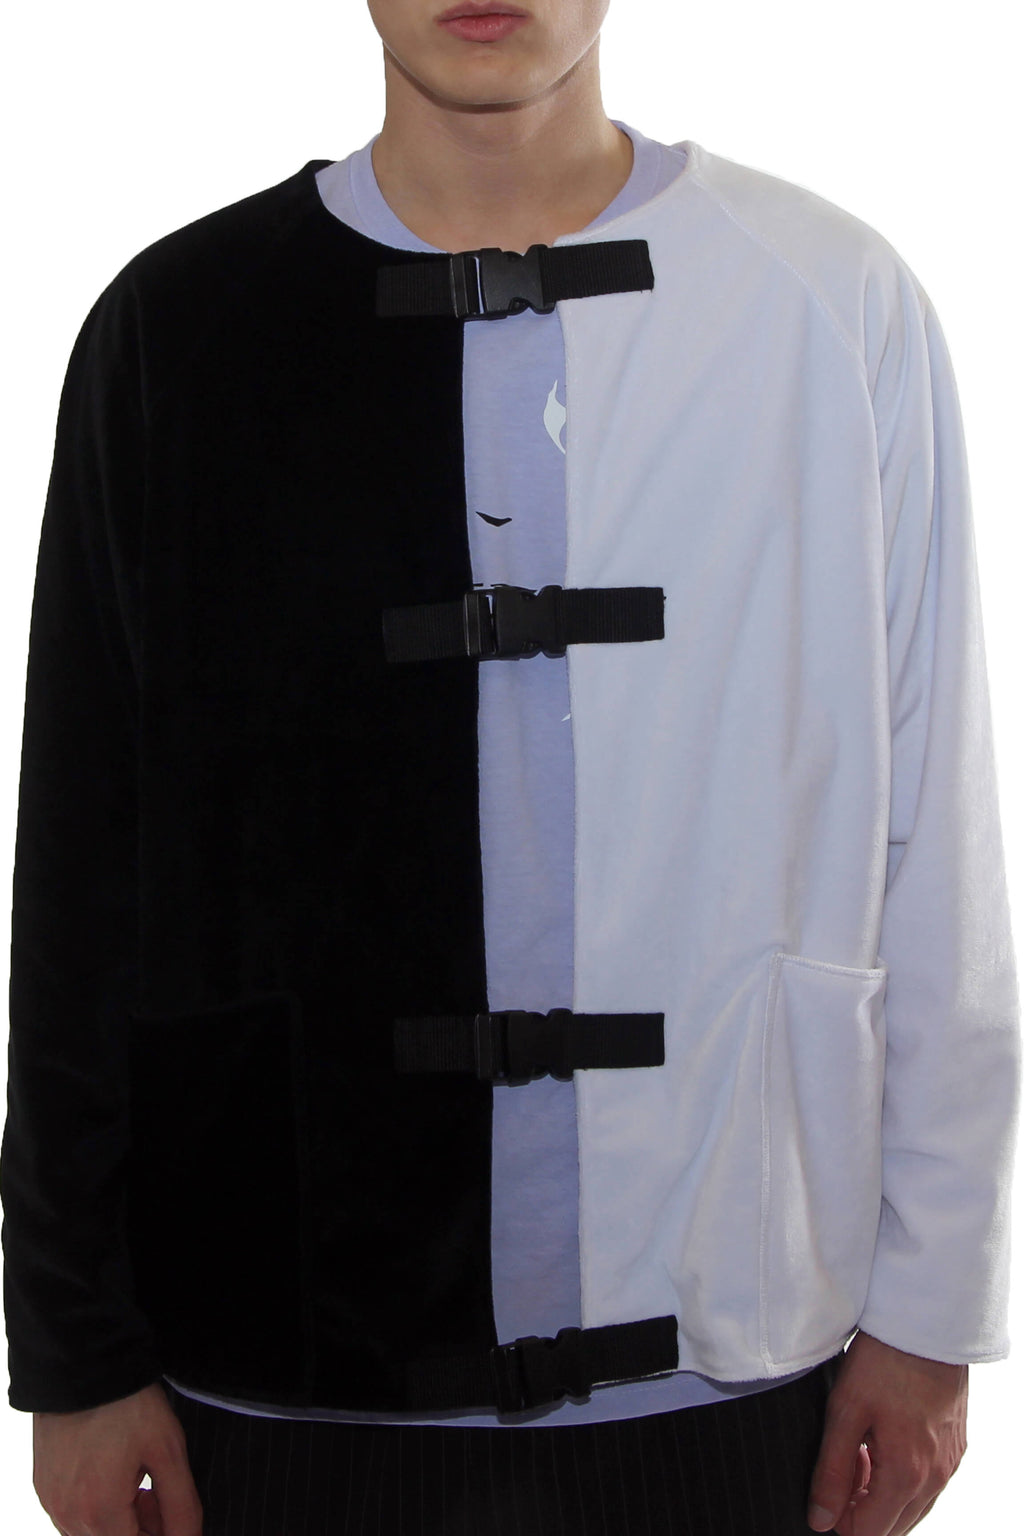 """SPLIT FLEECE JACKET"" / BLACK / WHITE"